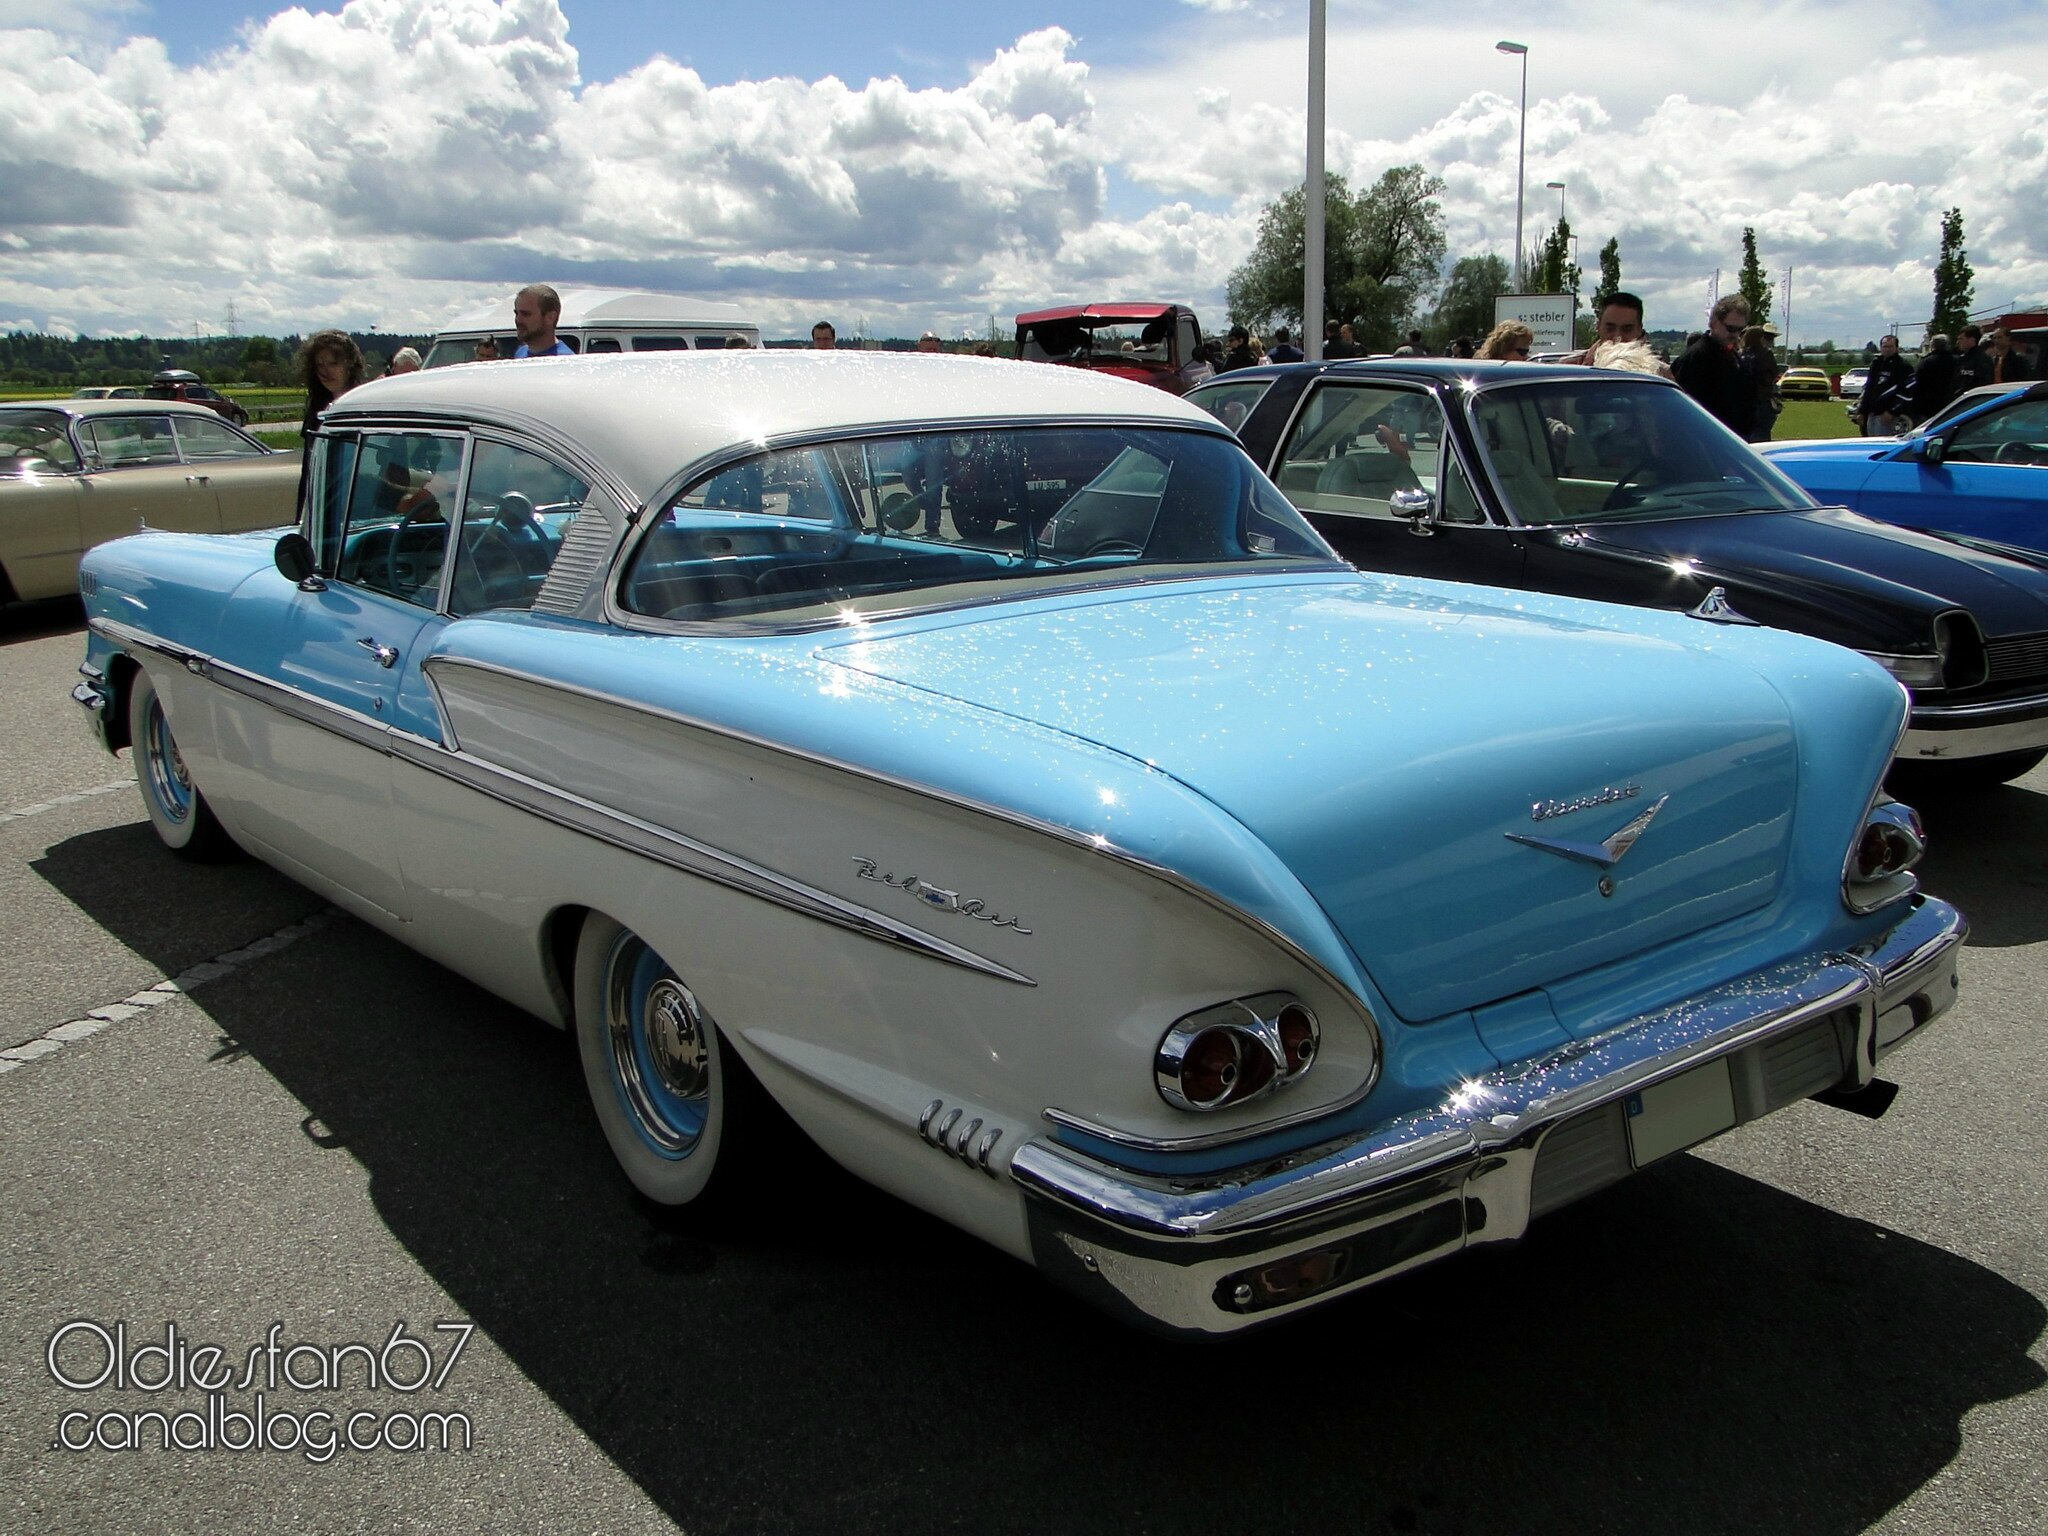 Chevrolet Bel Air Sport Hardtop Coupe 1958 Oldiesfan67